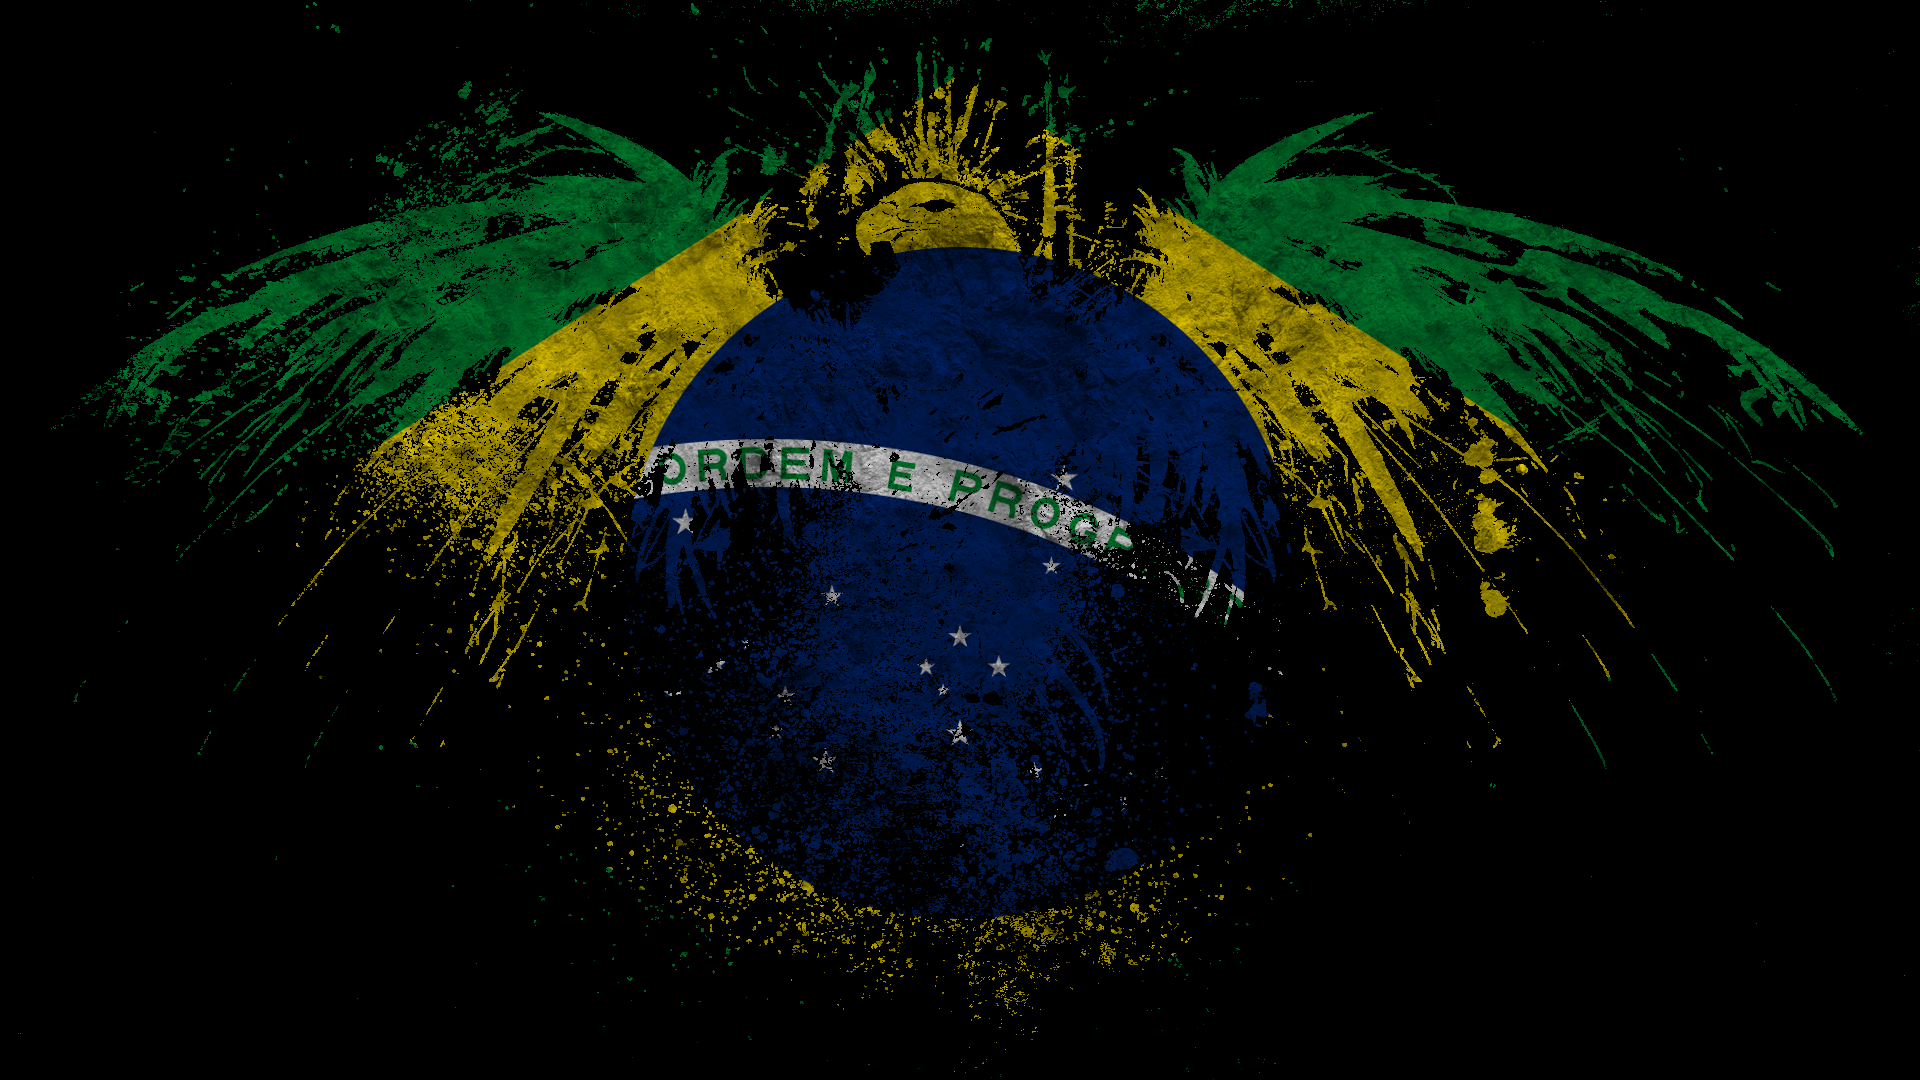 Brazil Flag HQFX Live Wallpaper - DSC1515 Screenshot